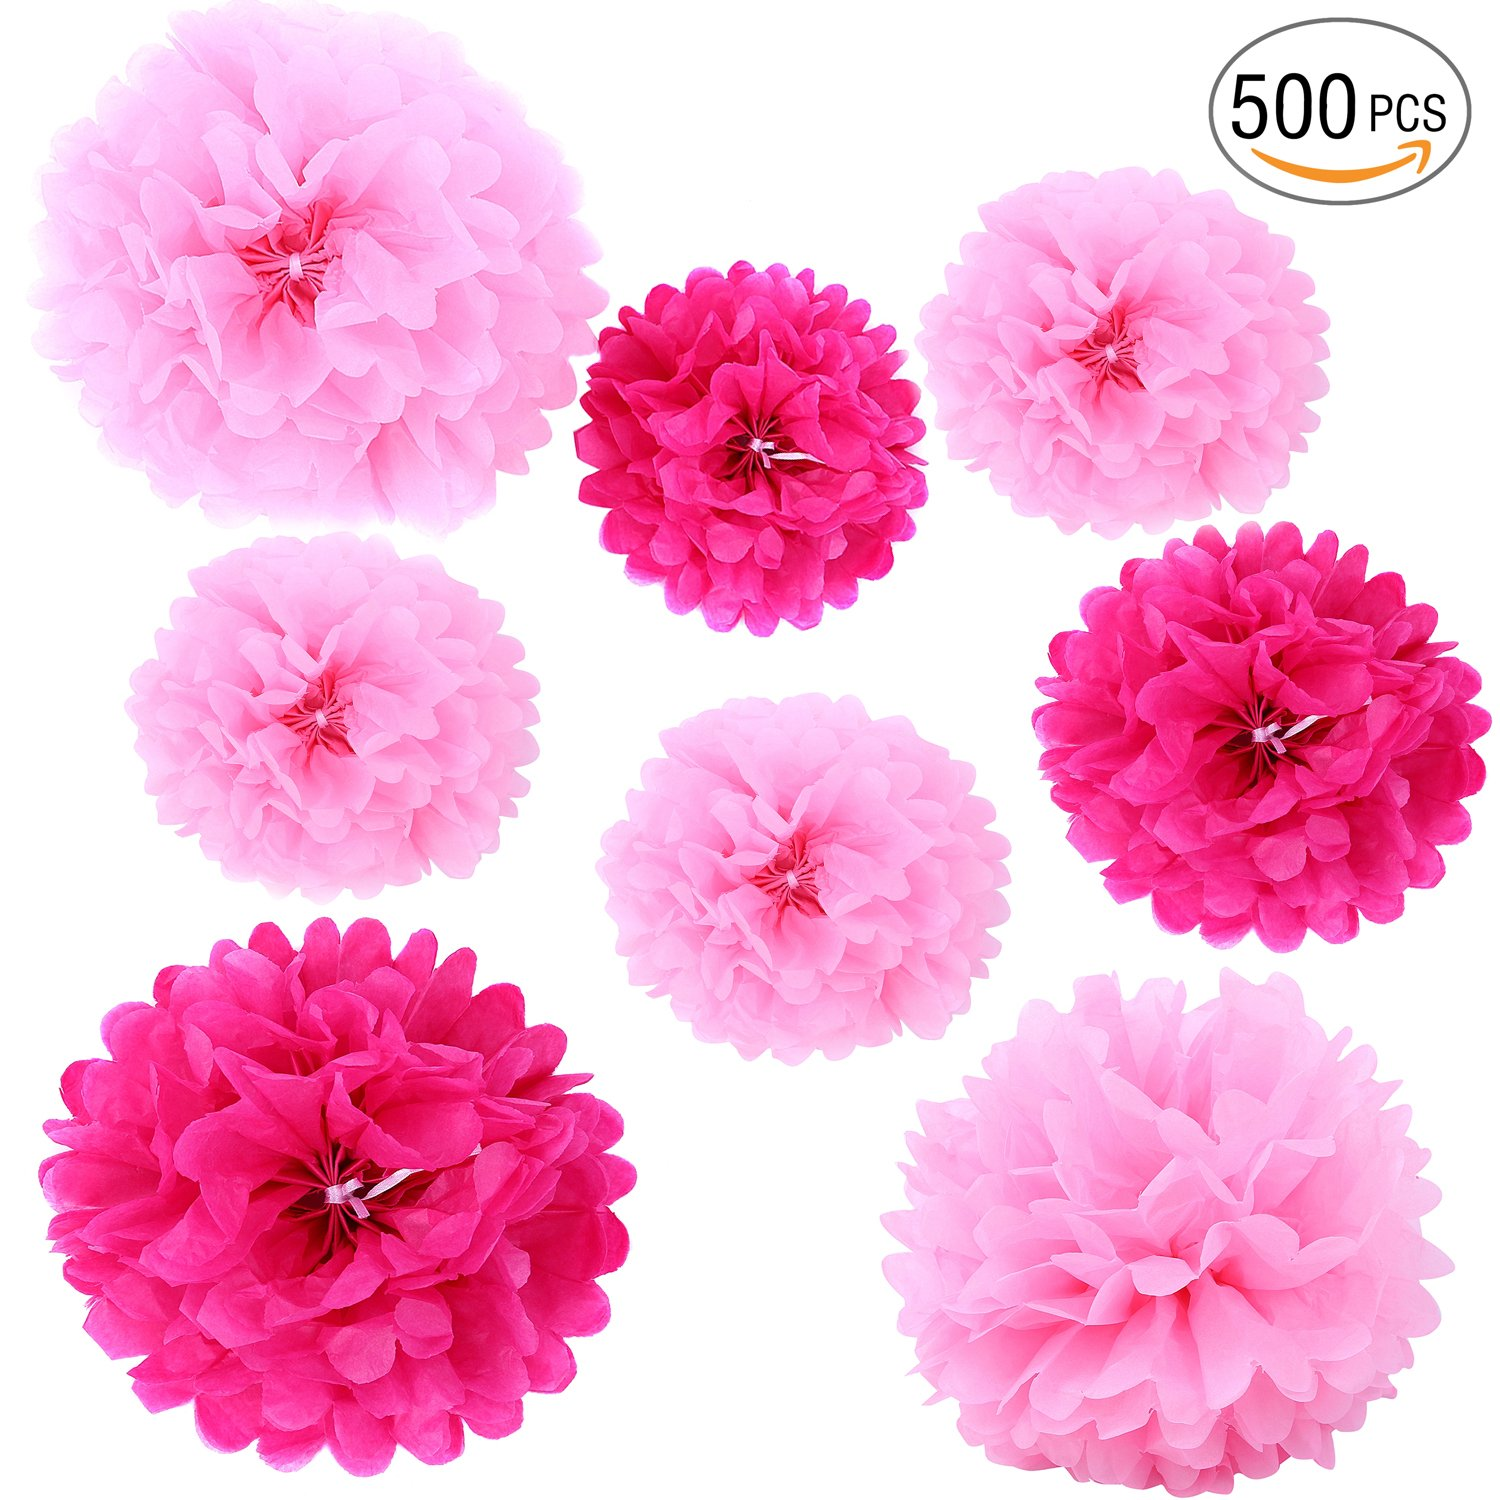 Tissue Paper Pom Poms - 5 pcs Ohuhu Paper Flowers, Decorations Crafts Pompoms Great for Baby Shower & Wedding Bridal Birthday Fiesta Holiday Event Pink Party Decorations COMINHKPR138551